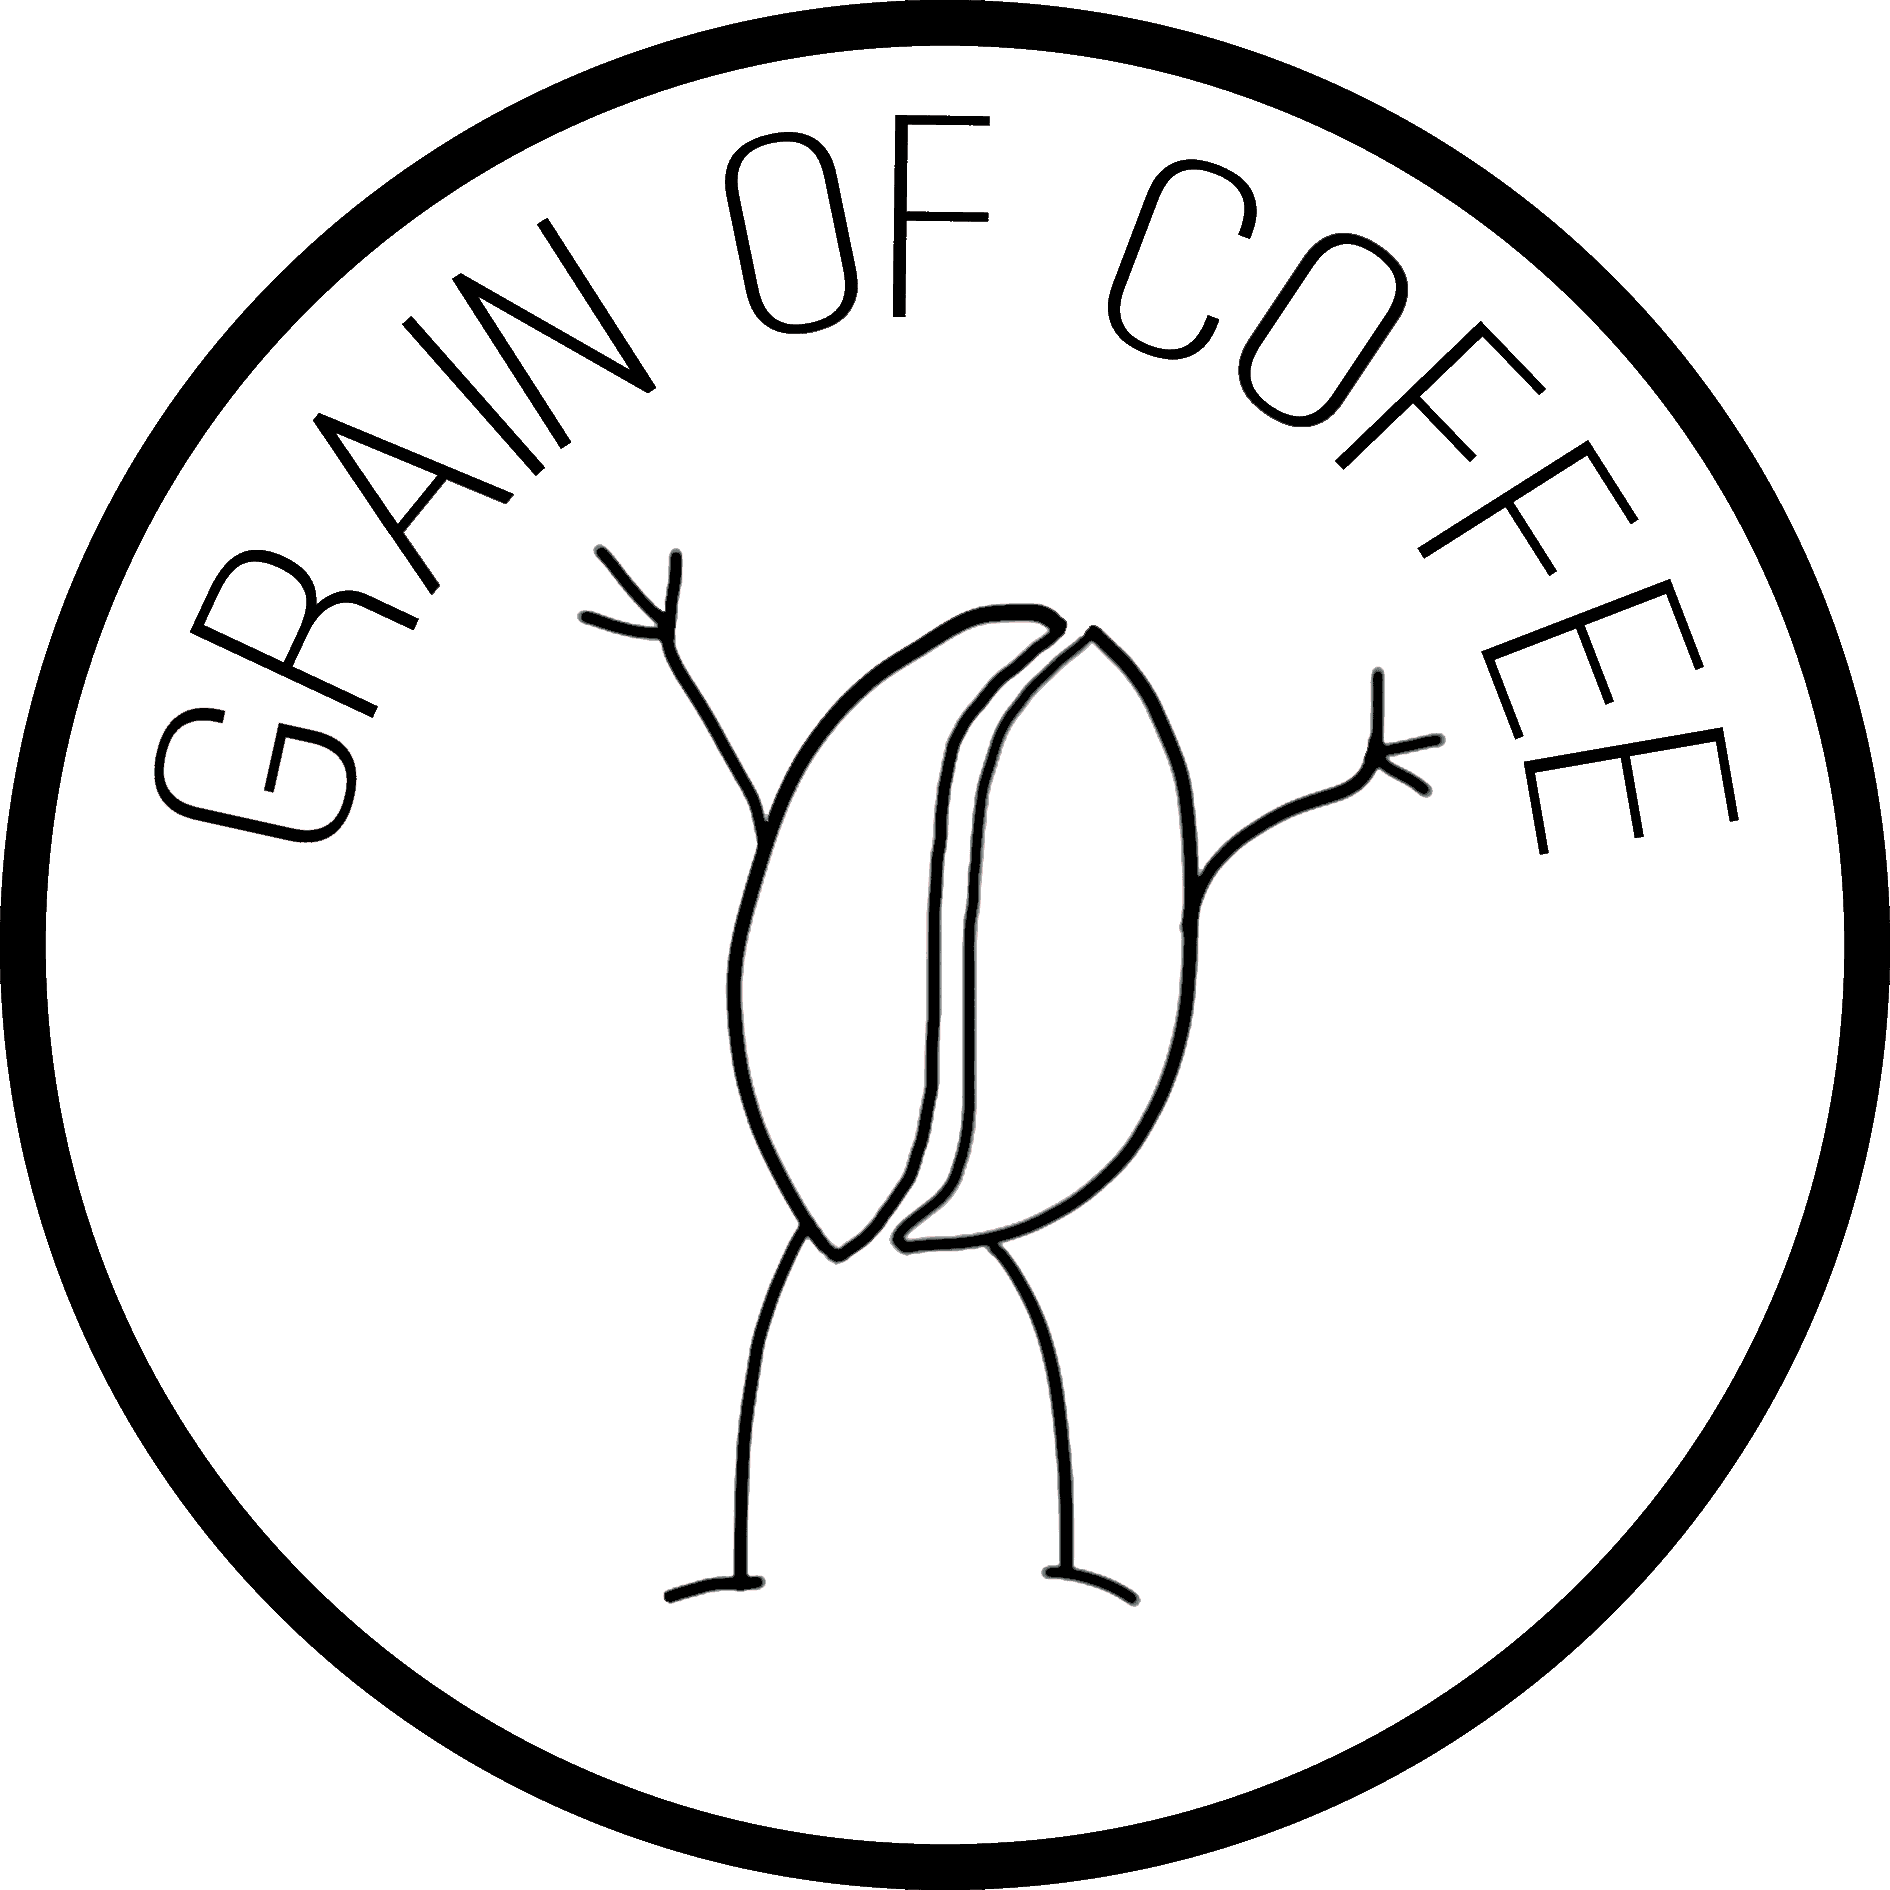 Grain of Coffee